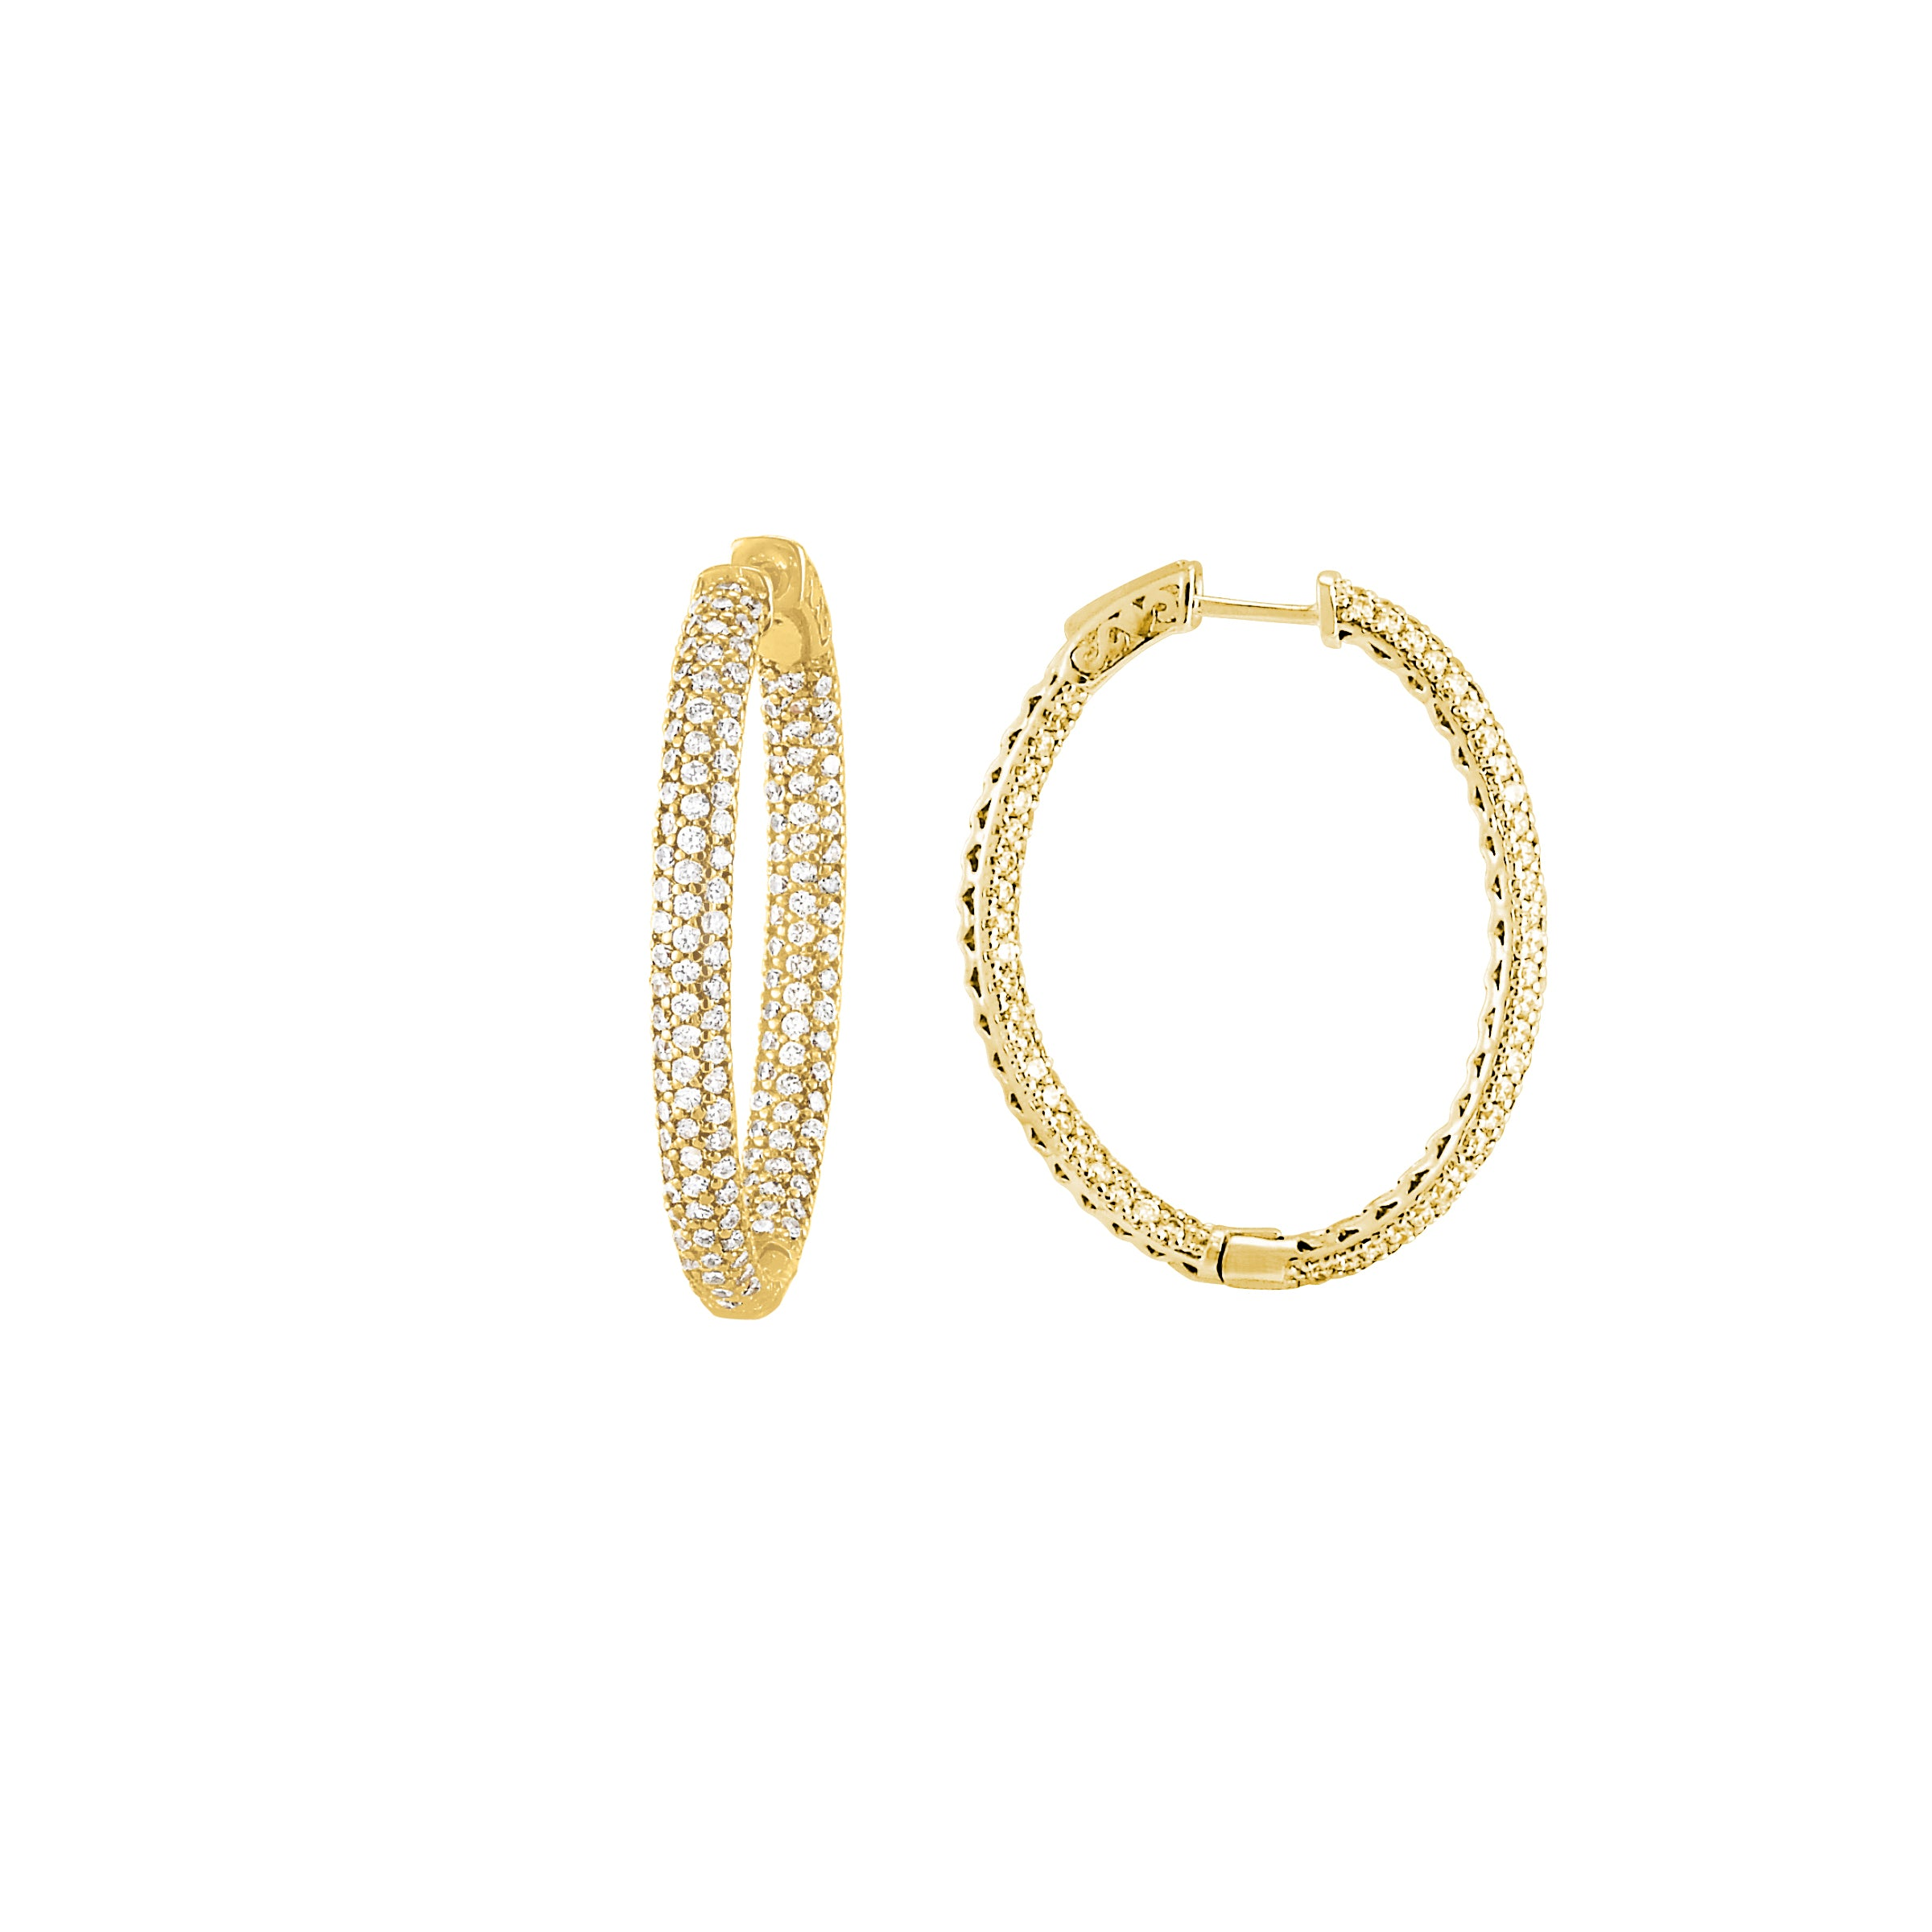 Pavé Set CZ Oval Hoop Earrings, Sterling Silver with Yellow Gold Plating